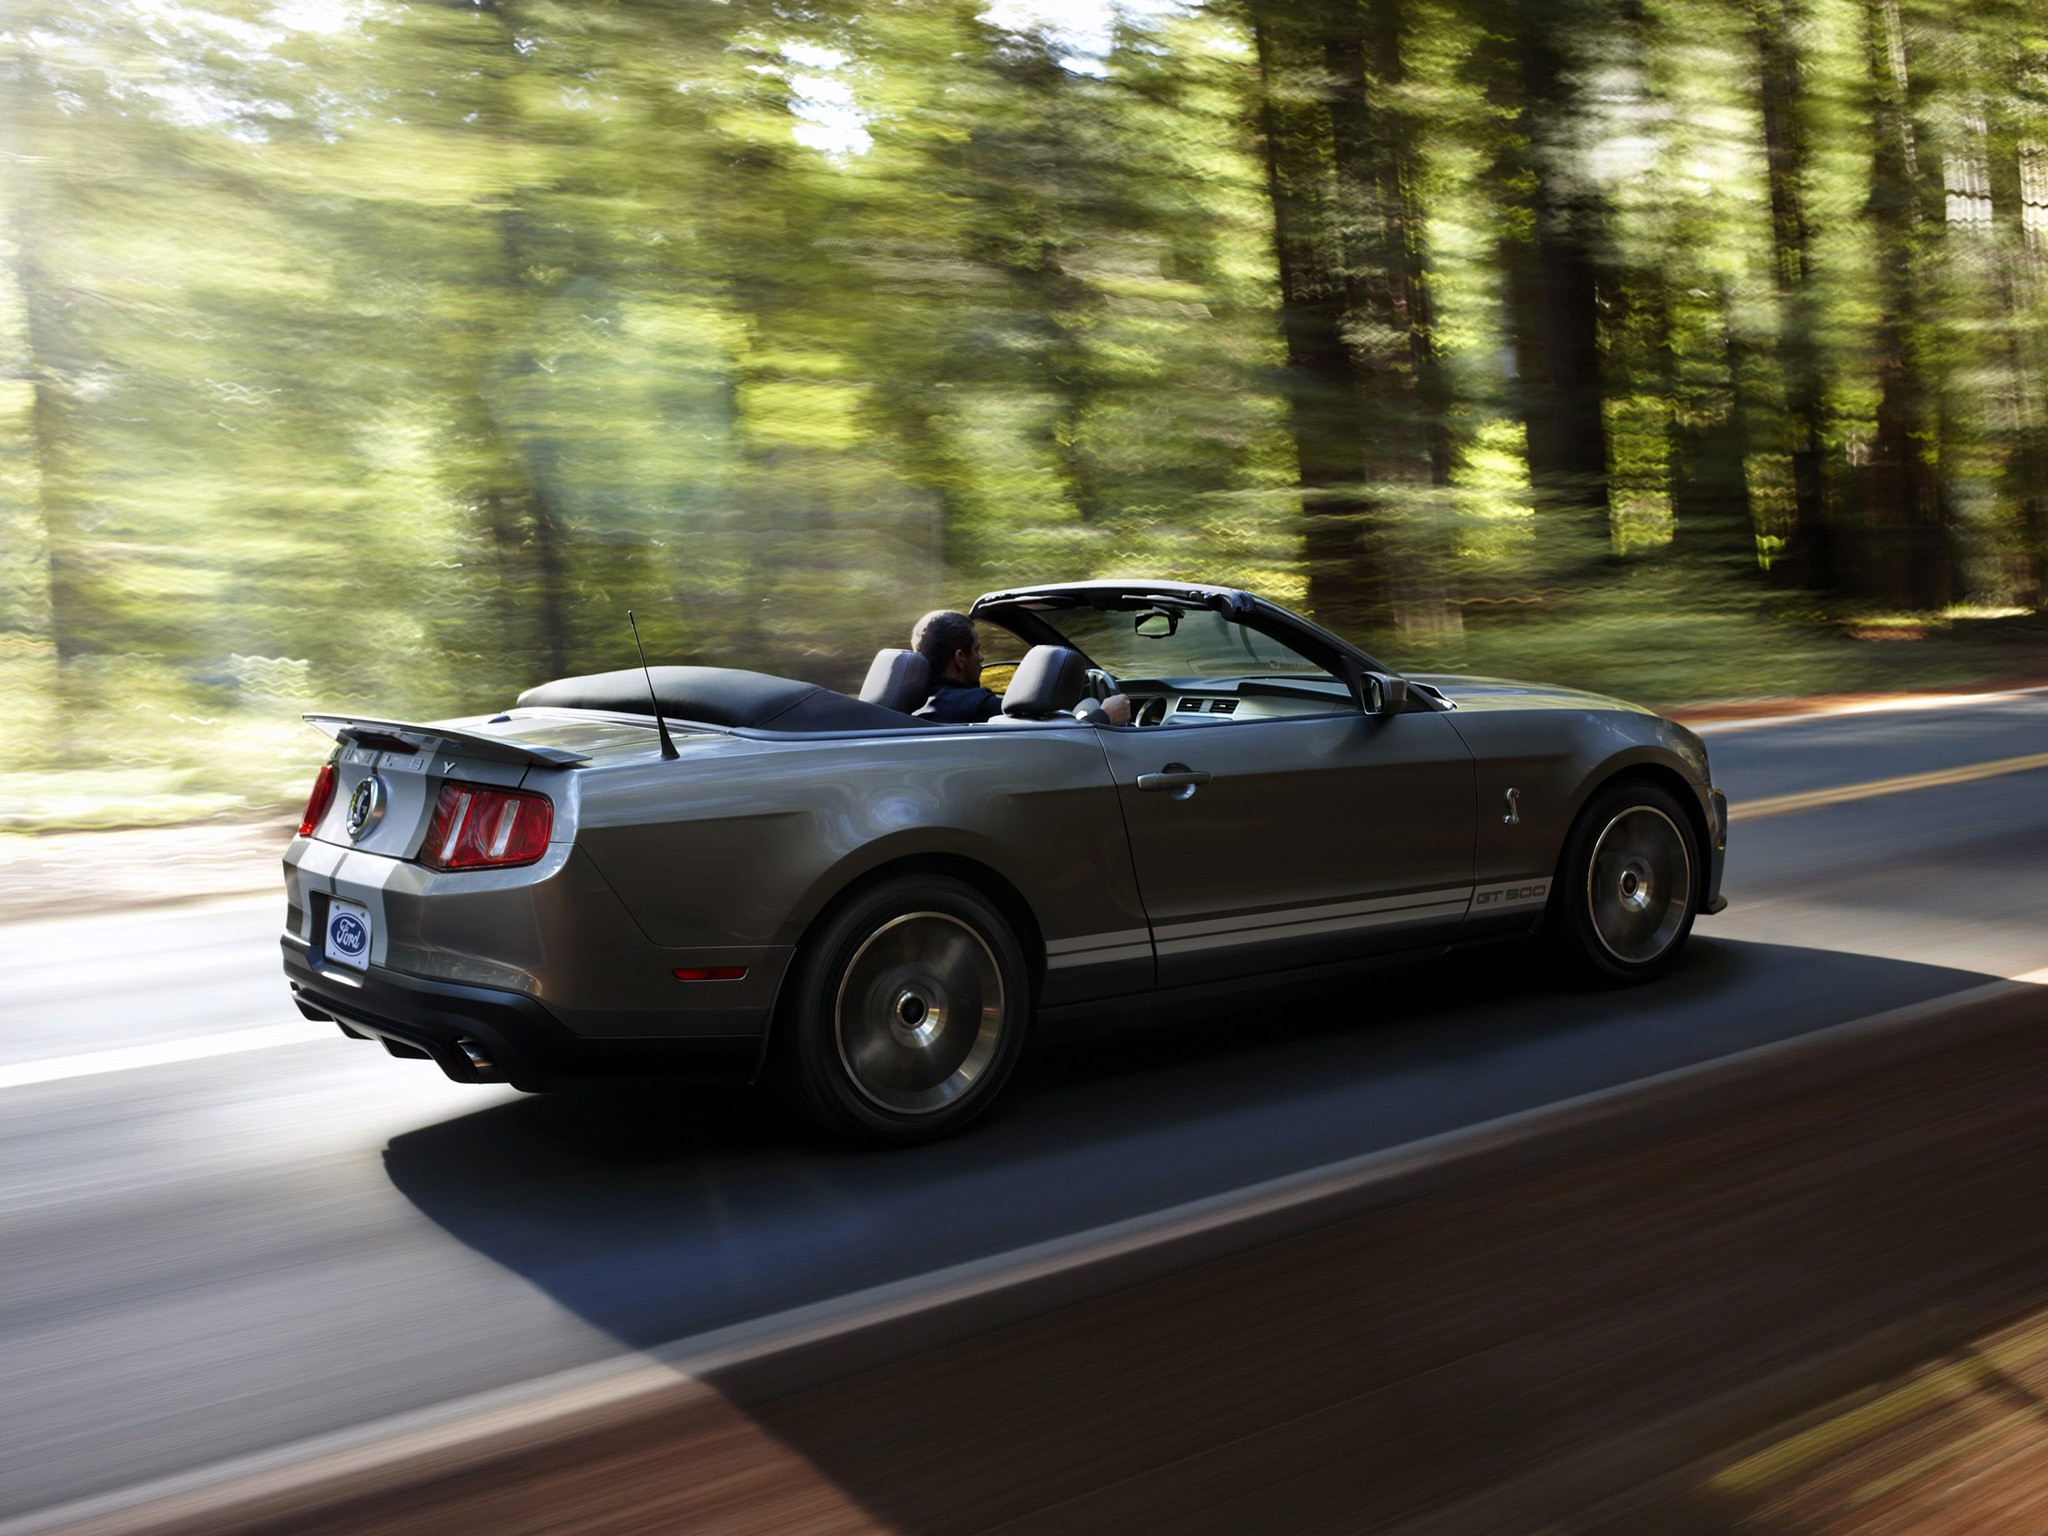 FORD Mustang Shelby GT500 Convertible specs & photos - 2009, 2010, 2011, 2012 - autoevolution